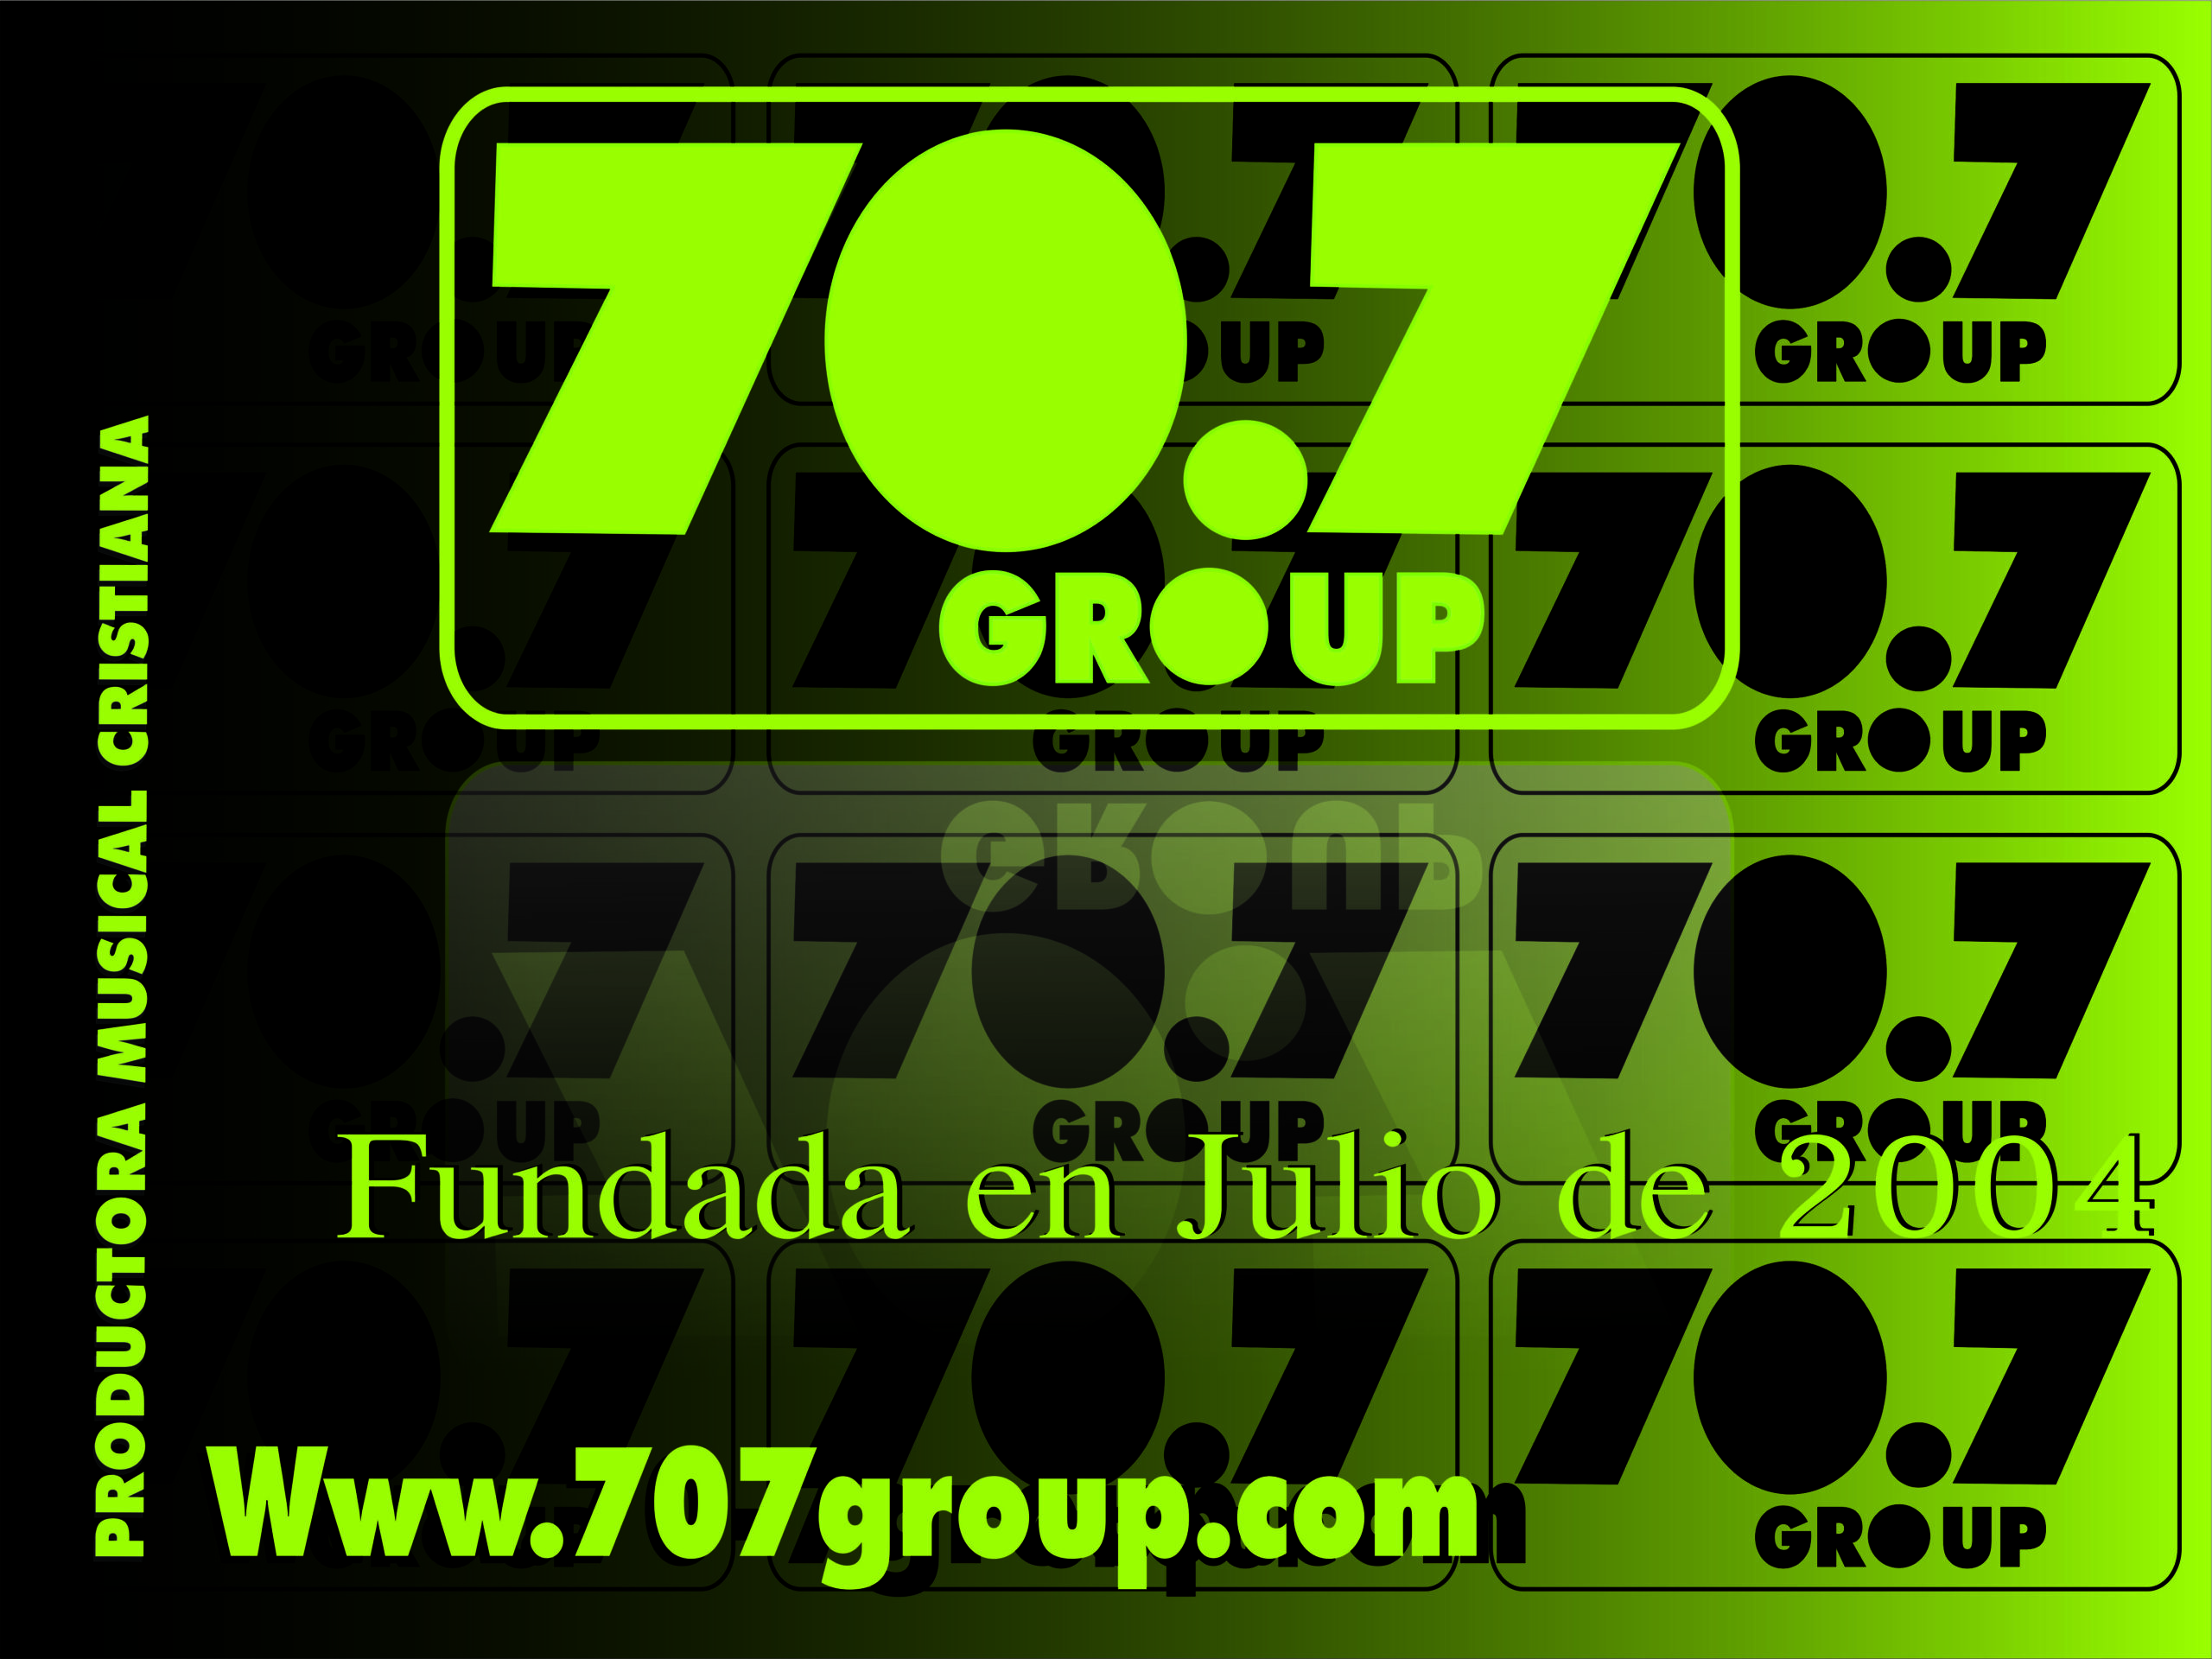 70.7 Group